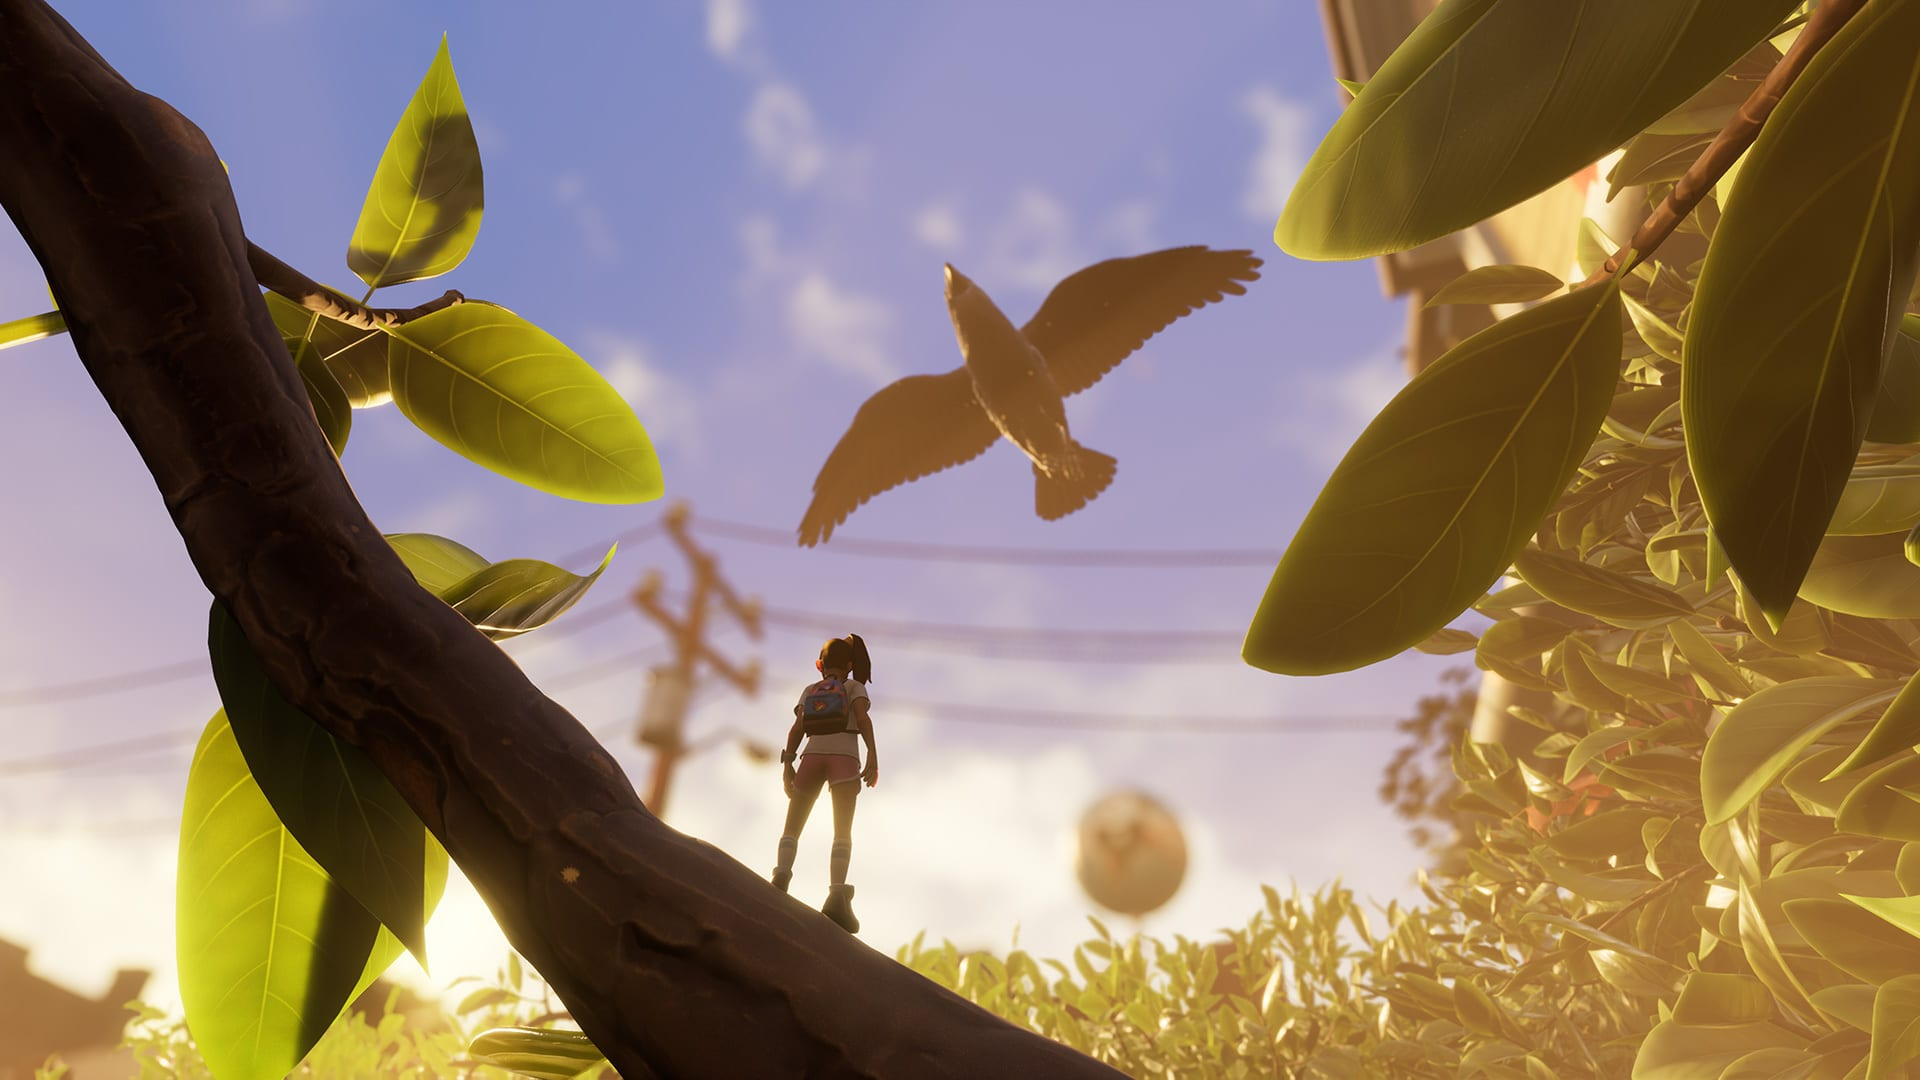 Grounded Gets Player Perks, Bird and More in Latest Update